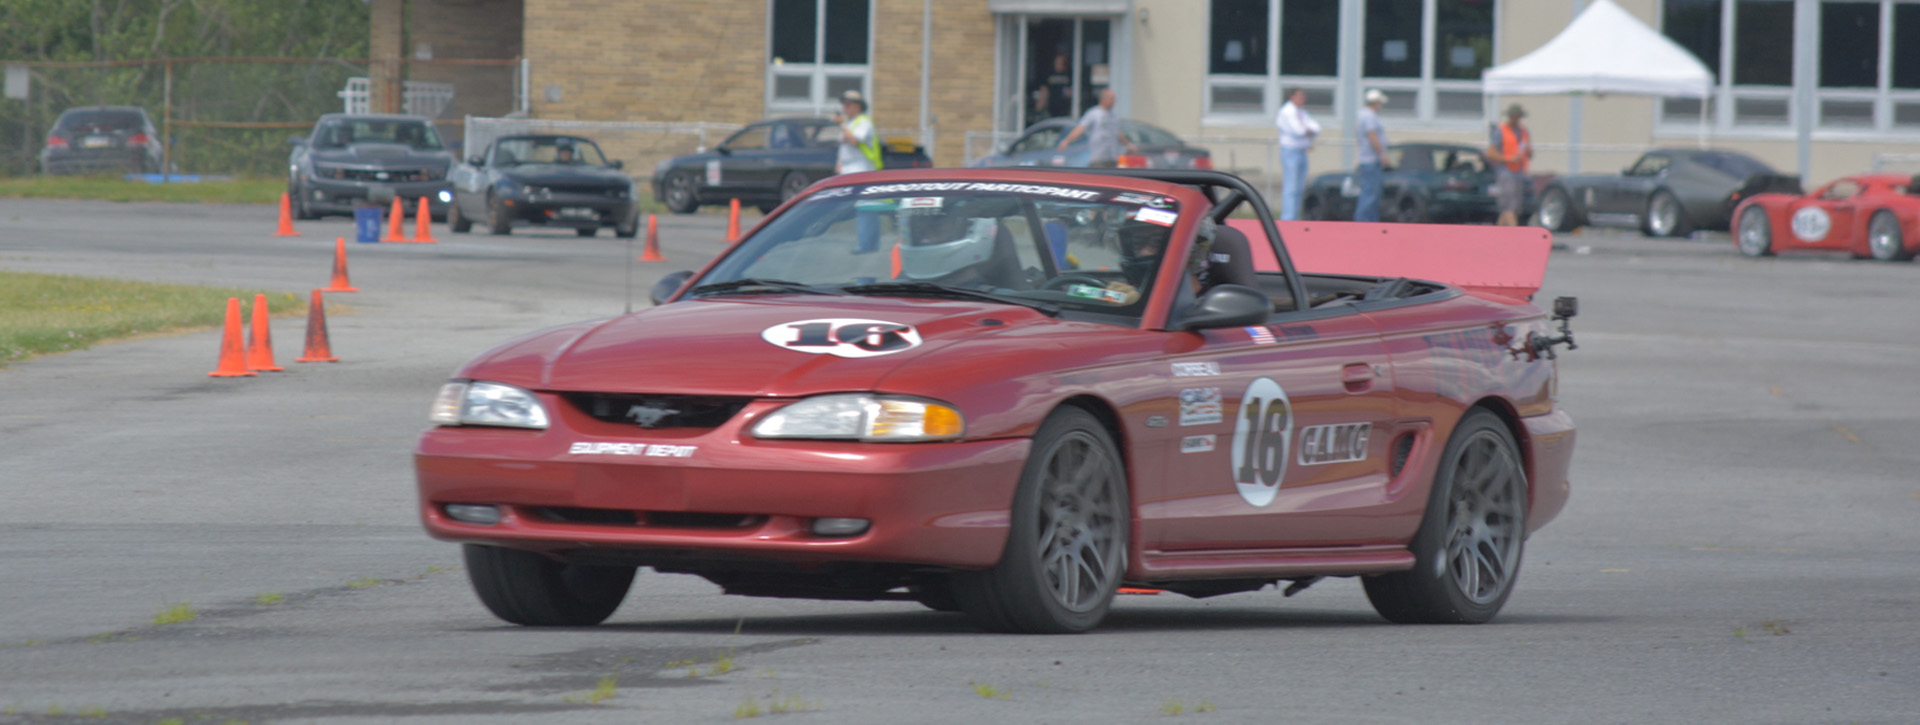 <p>Name: Christopher Brown From: York Haven, PA Runs: SCCA AutoCross Drives: 1997 Ford Mustang GT in CAM-C class Member Since: 2016 If you ran with us in 2017 you are sure to have seen Chris around the events. When we asked him to talk about this AX experiences he had the [&hellip;]</p>